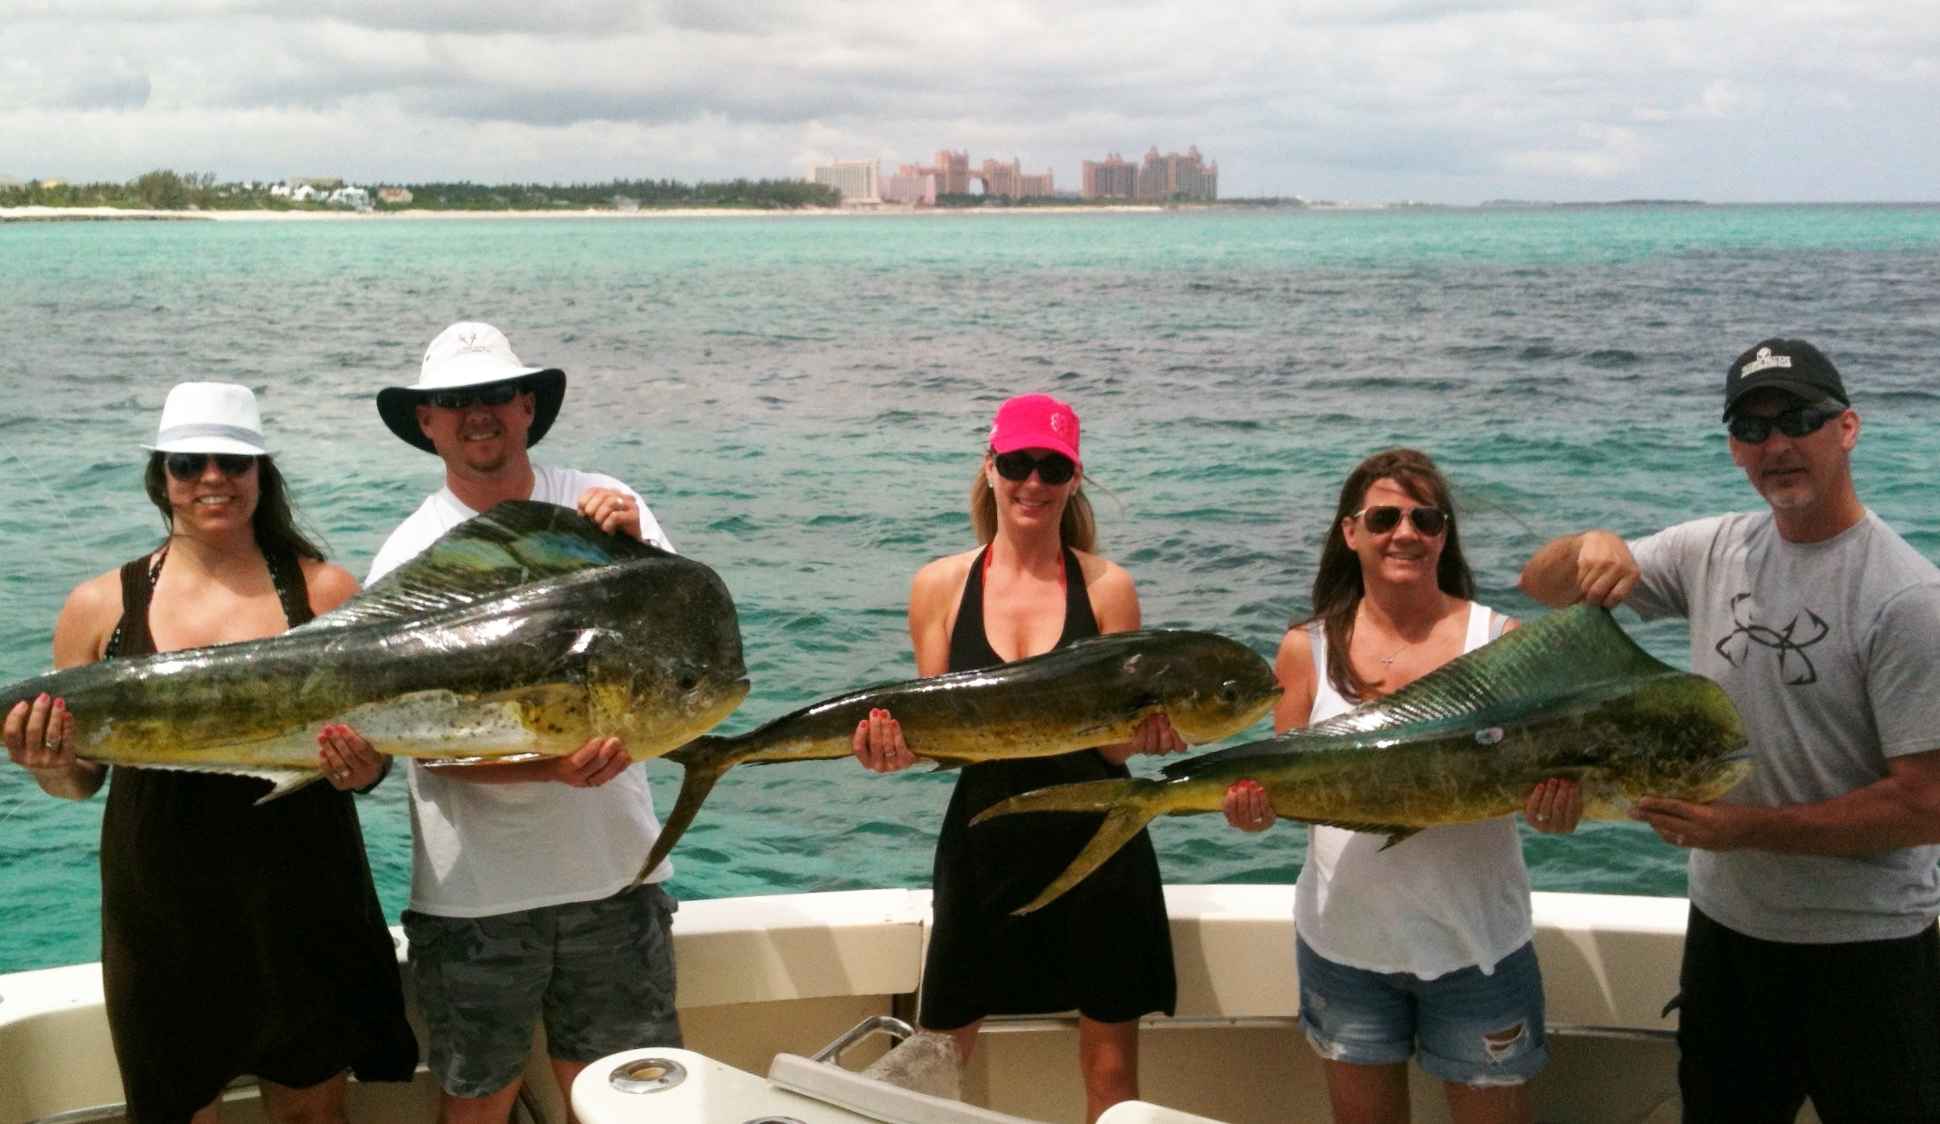 Hall of fame chubasco fishing charters for Fishing nassau bahamas